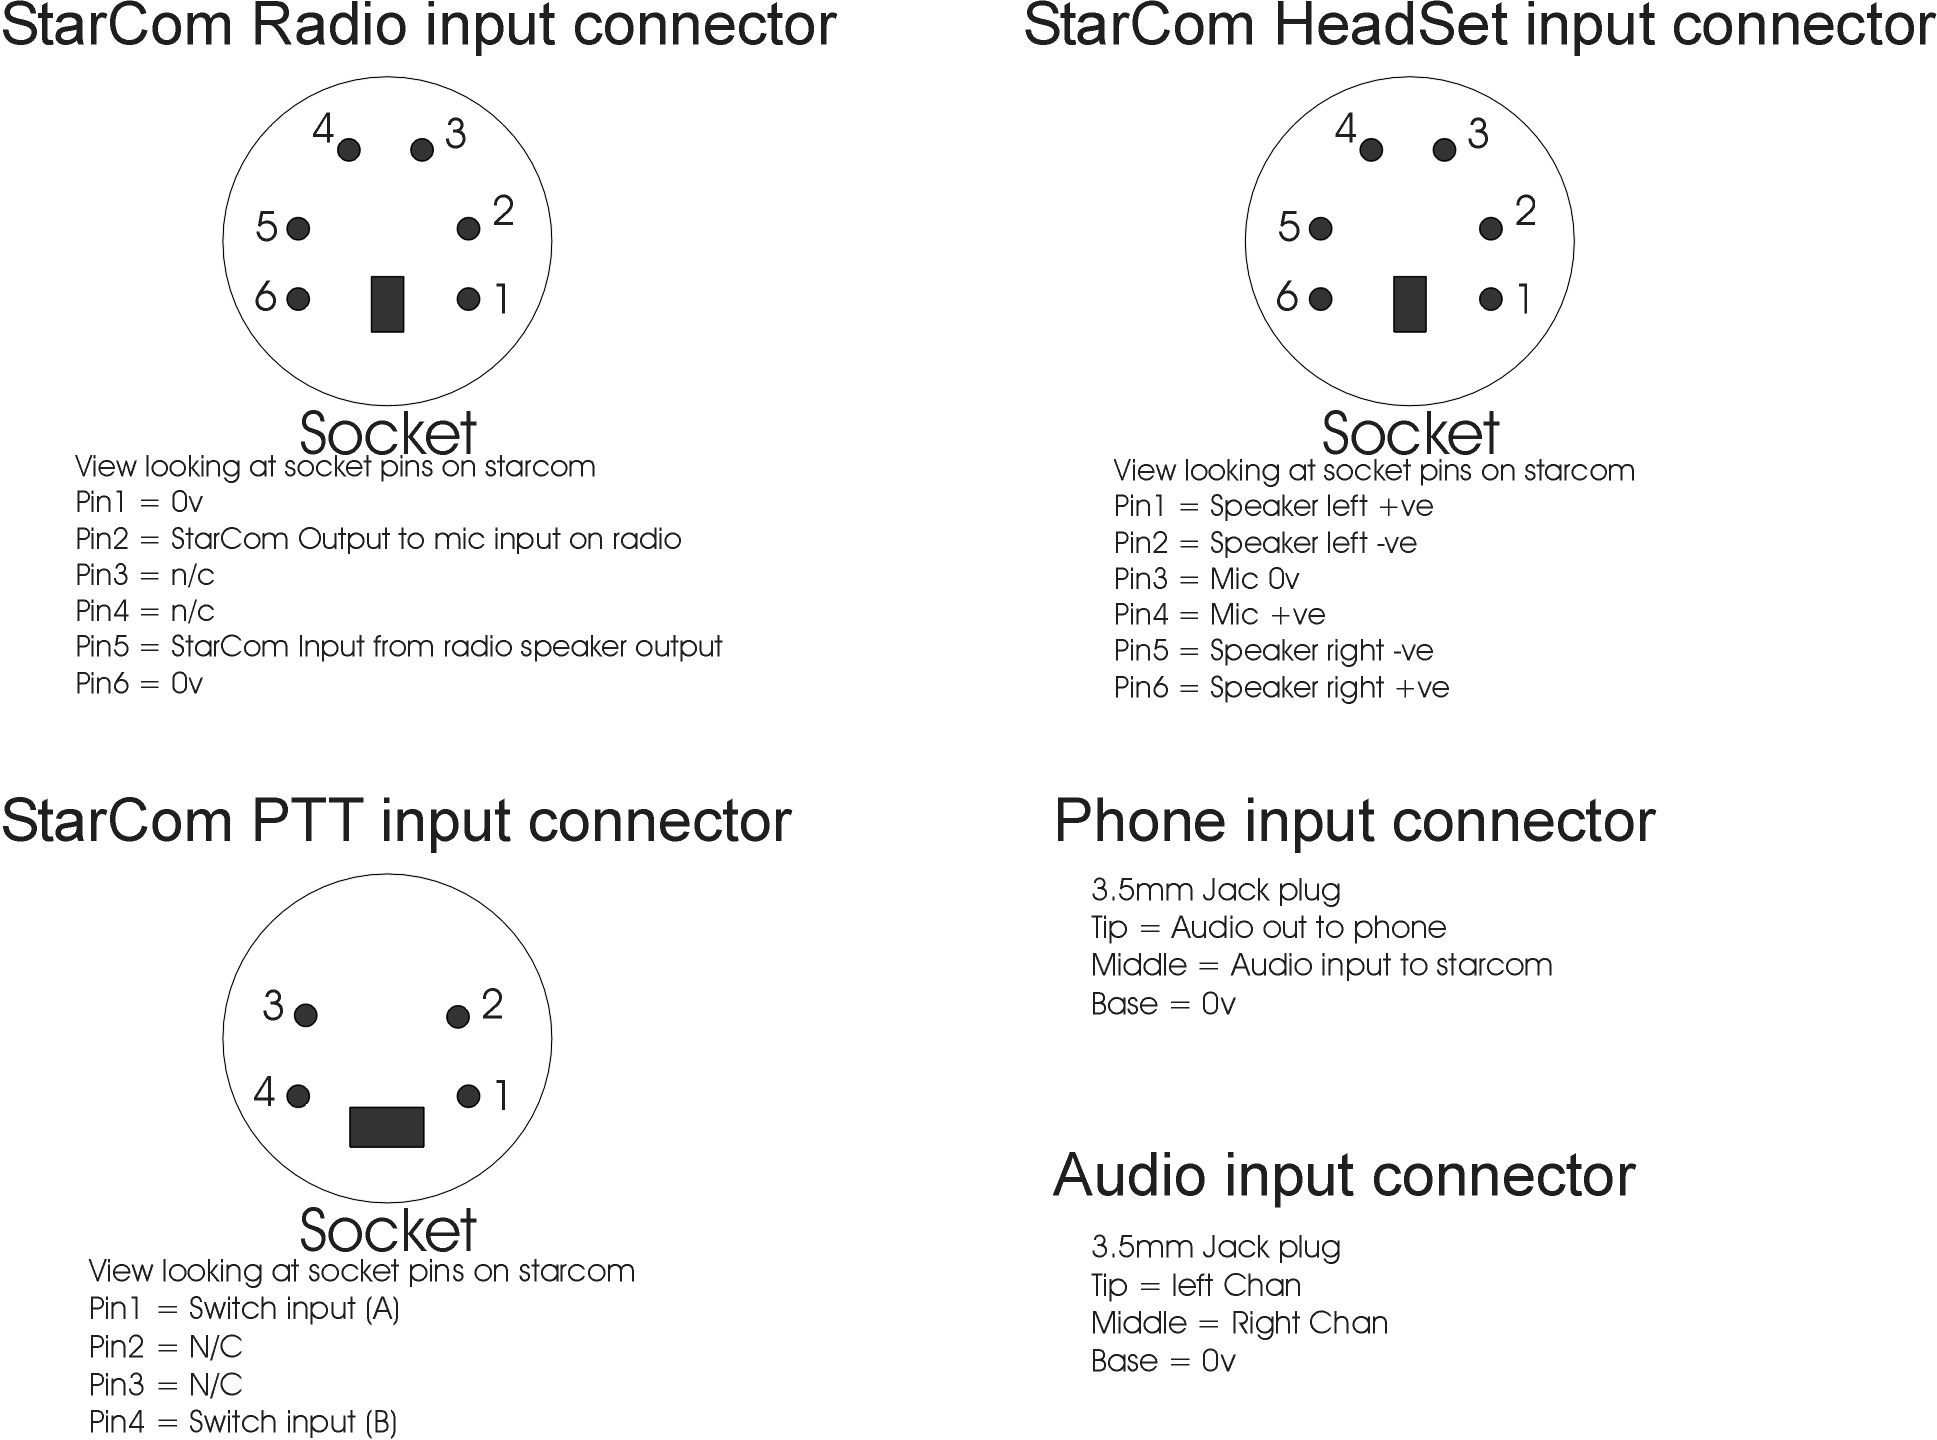 galaxy 959 cb radio mic wiring online wiring diagram. Black Bedroom Furniture Sets. Home Design Ideas